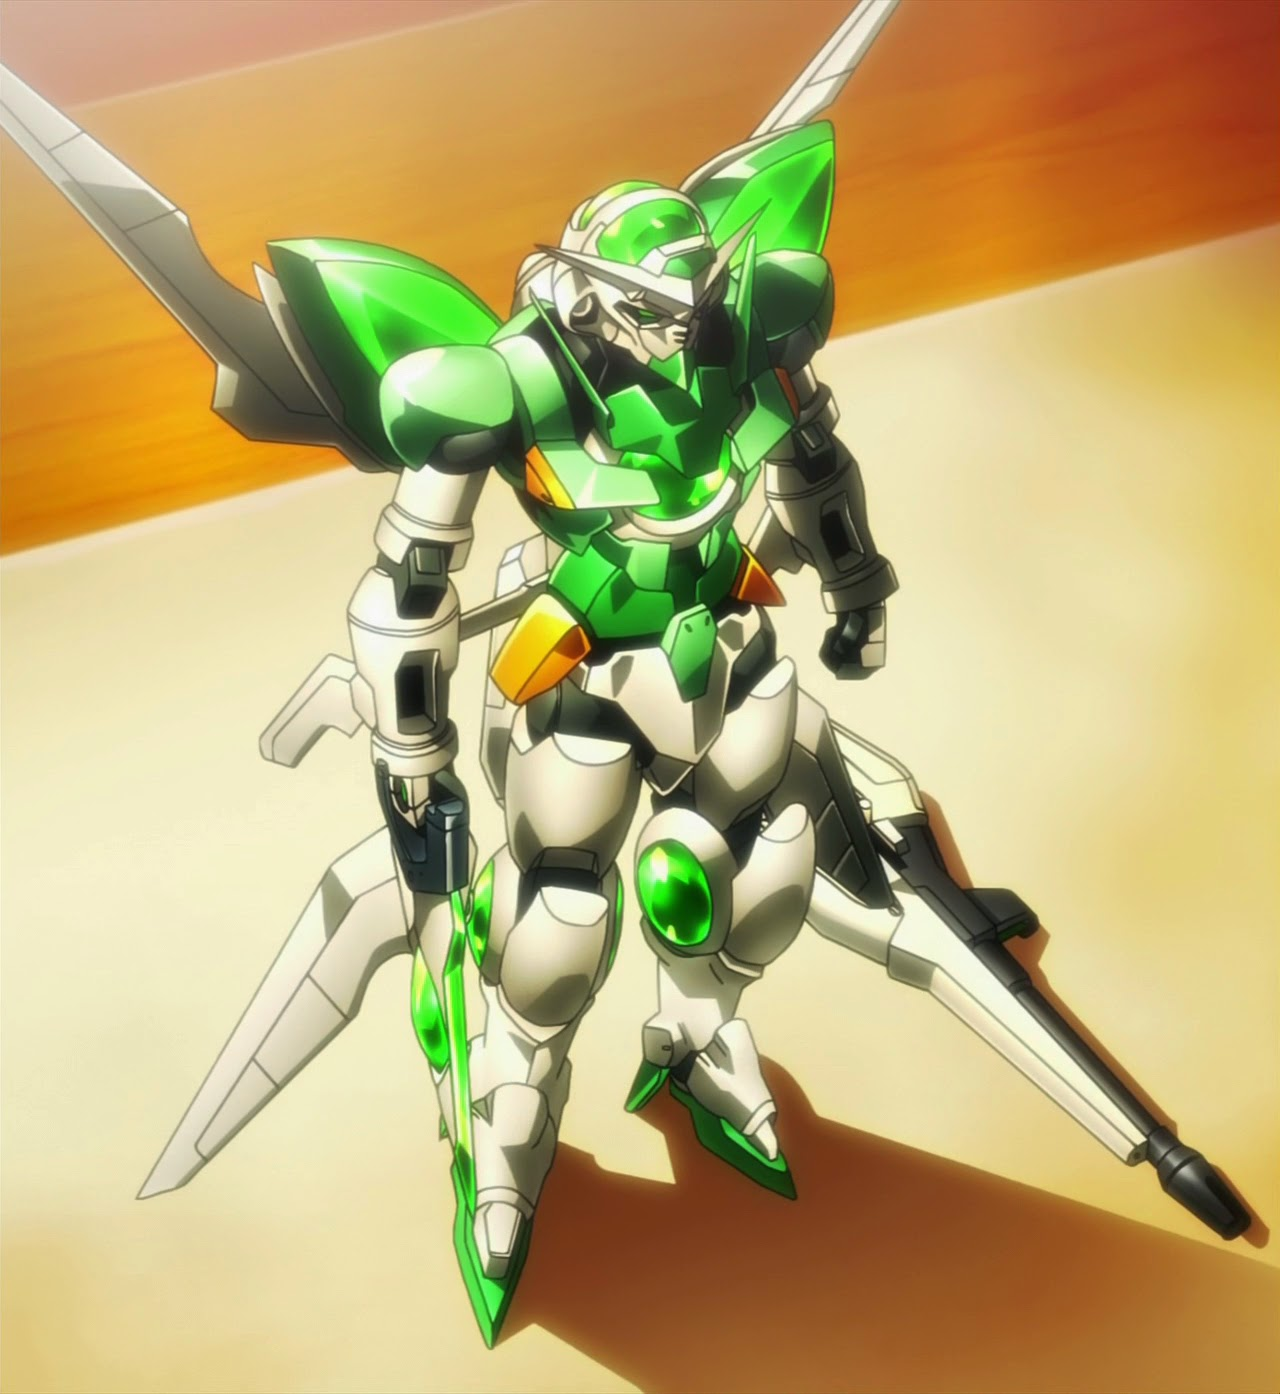 Gundam build fighters try panorama vertical wallpaper for Combat portent 2014 review